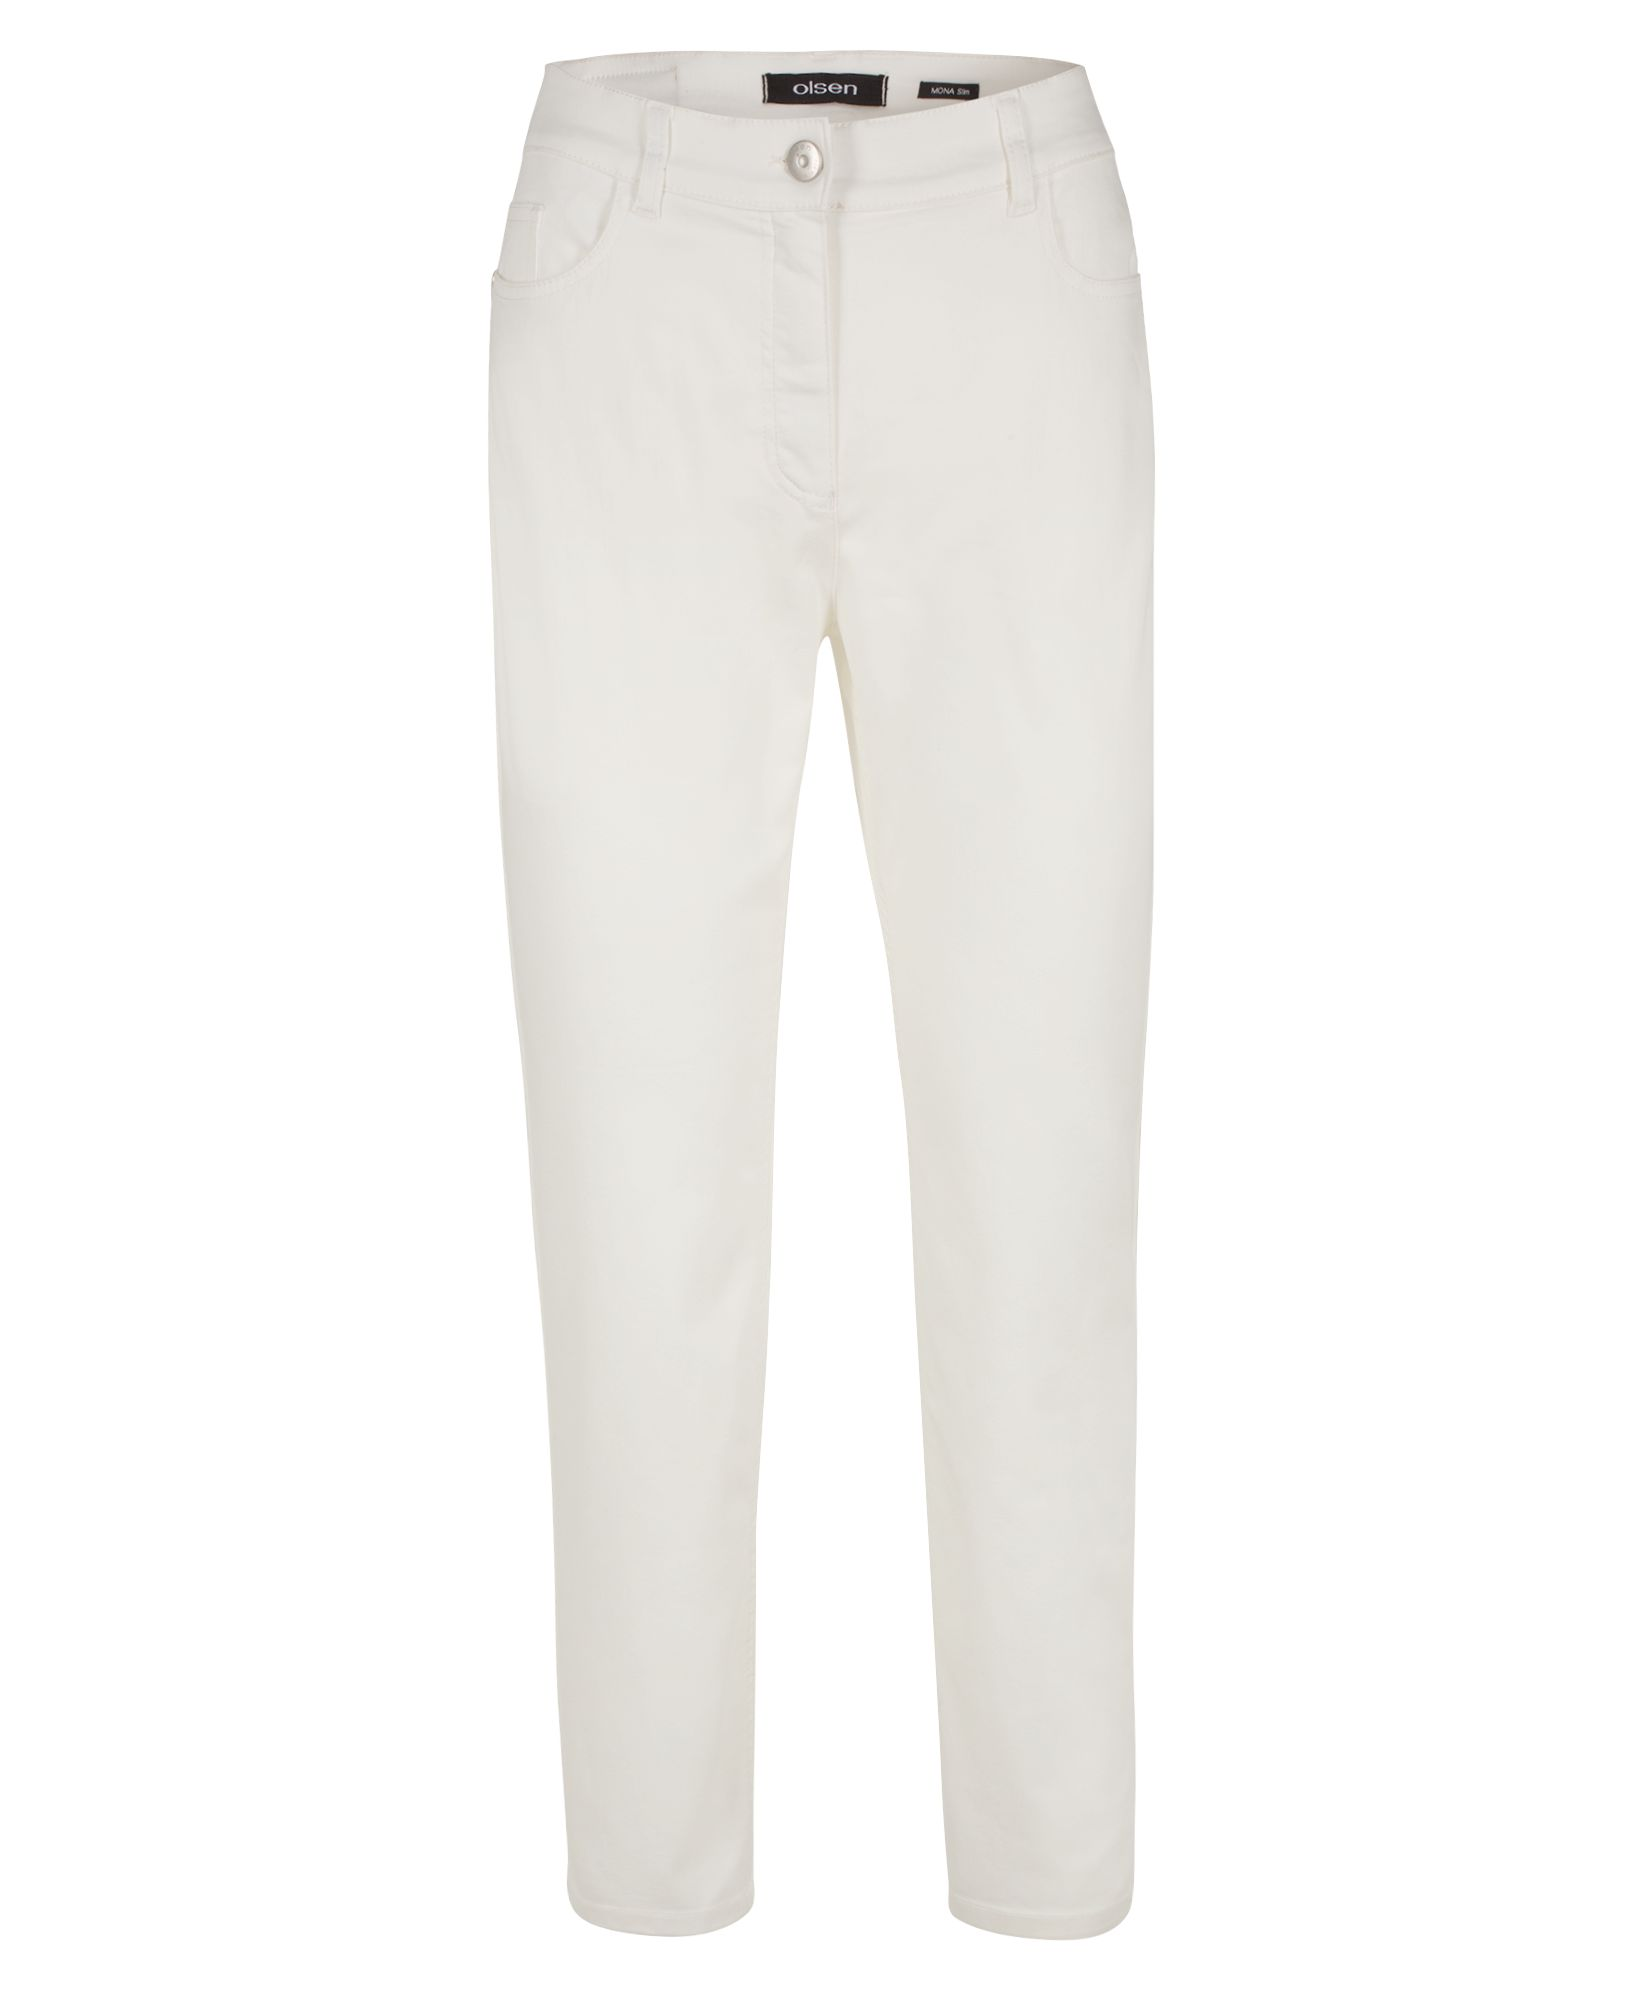 Olsen Trousers Casual Cropped, Off White